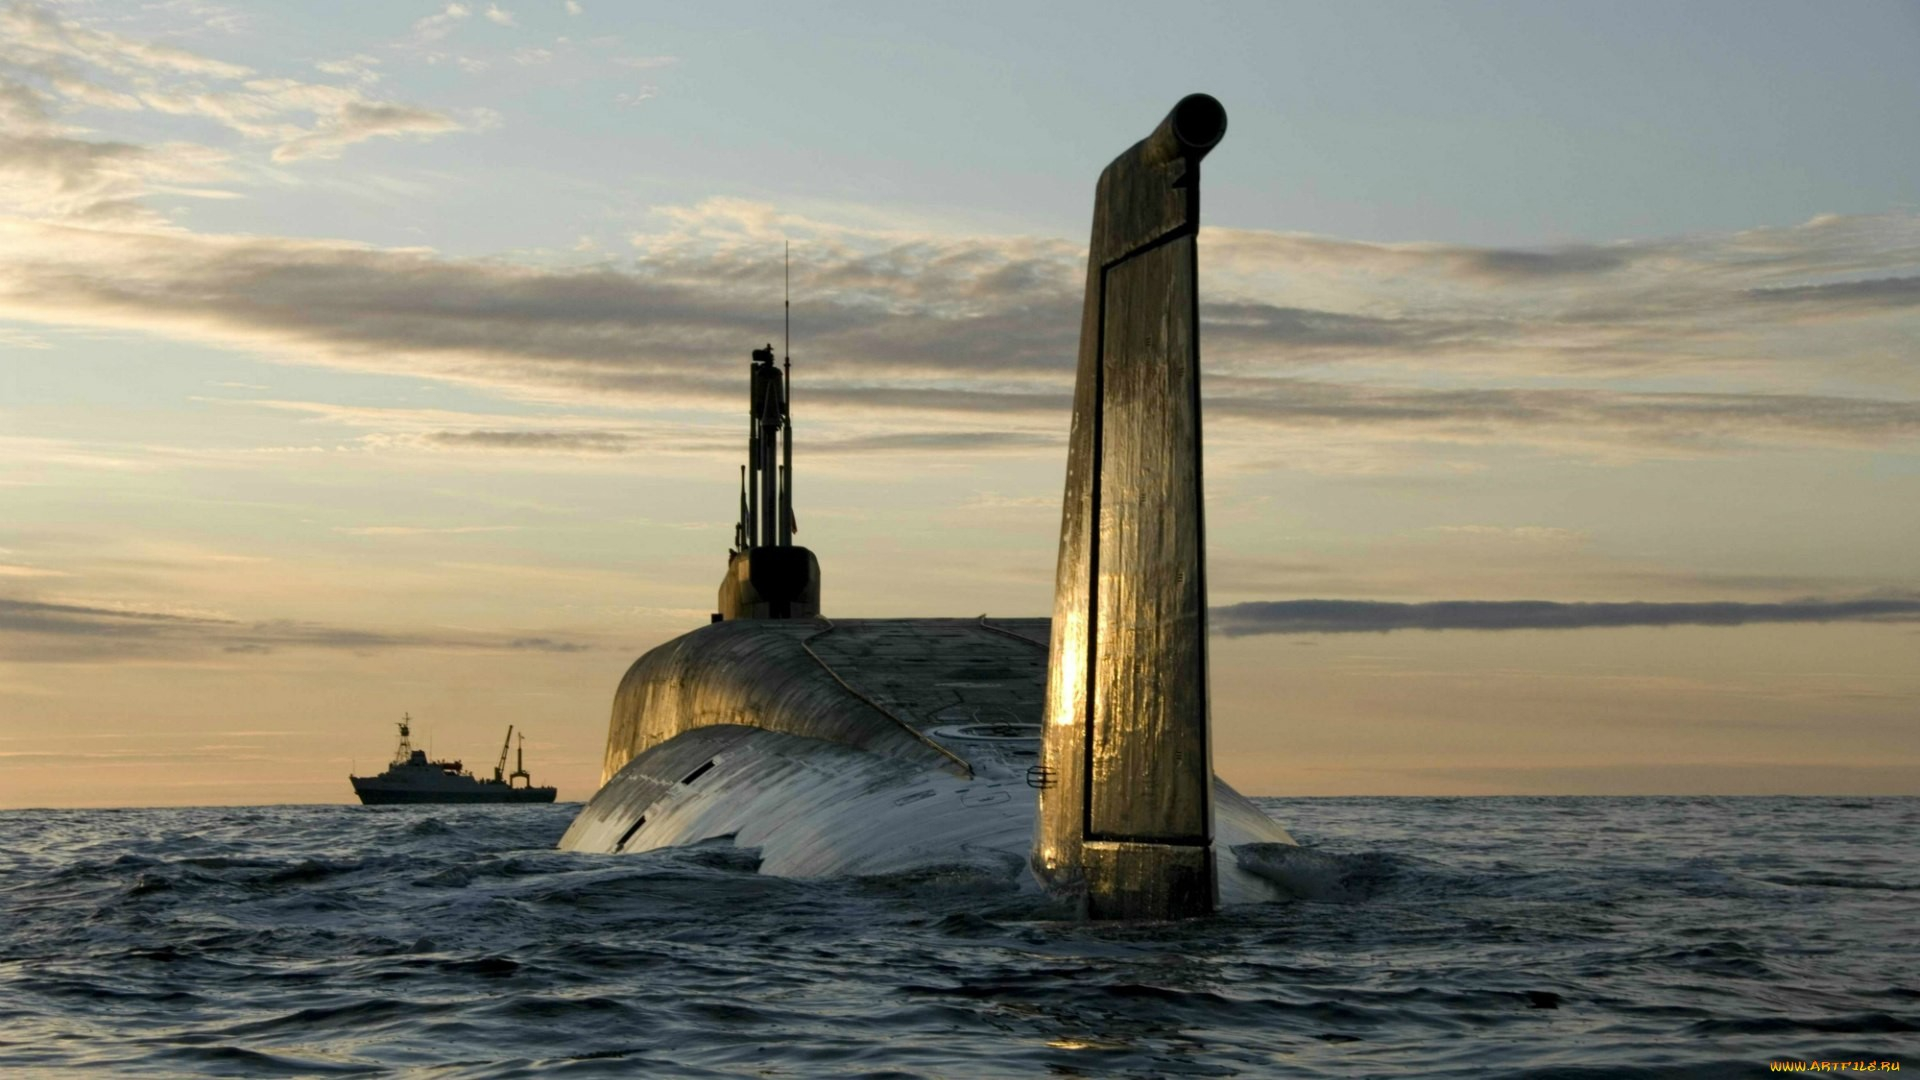 Russian-Borie-class-submarine-Yury-Dolgorukiy-K-surfaced-1920-x-1080-Need-iPhone-S-Plus-wallpaper-wp3809943